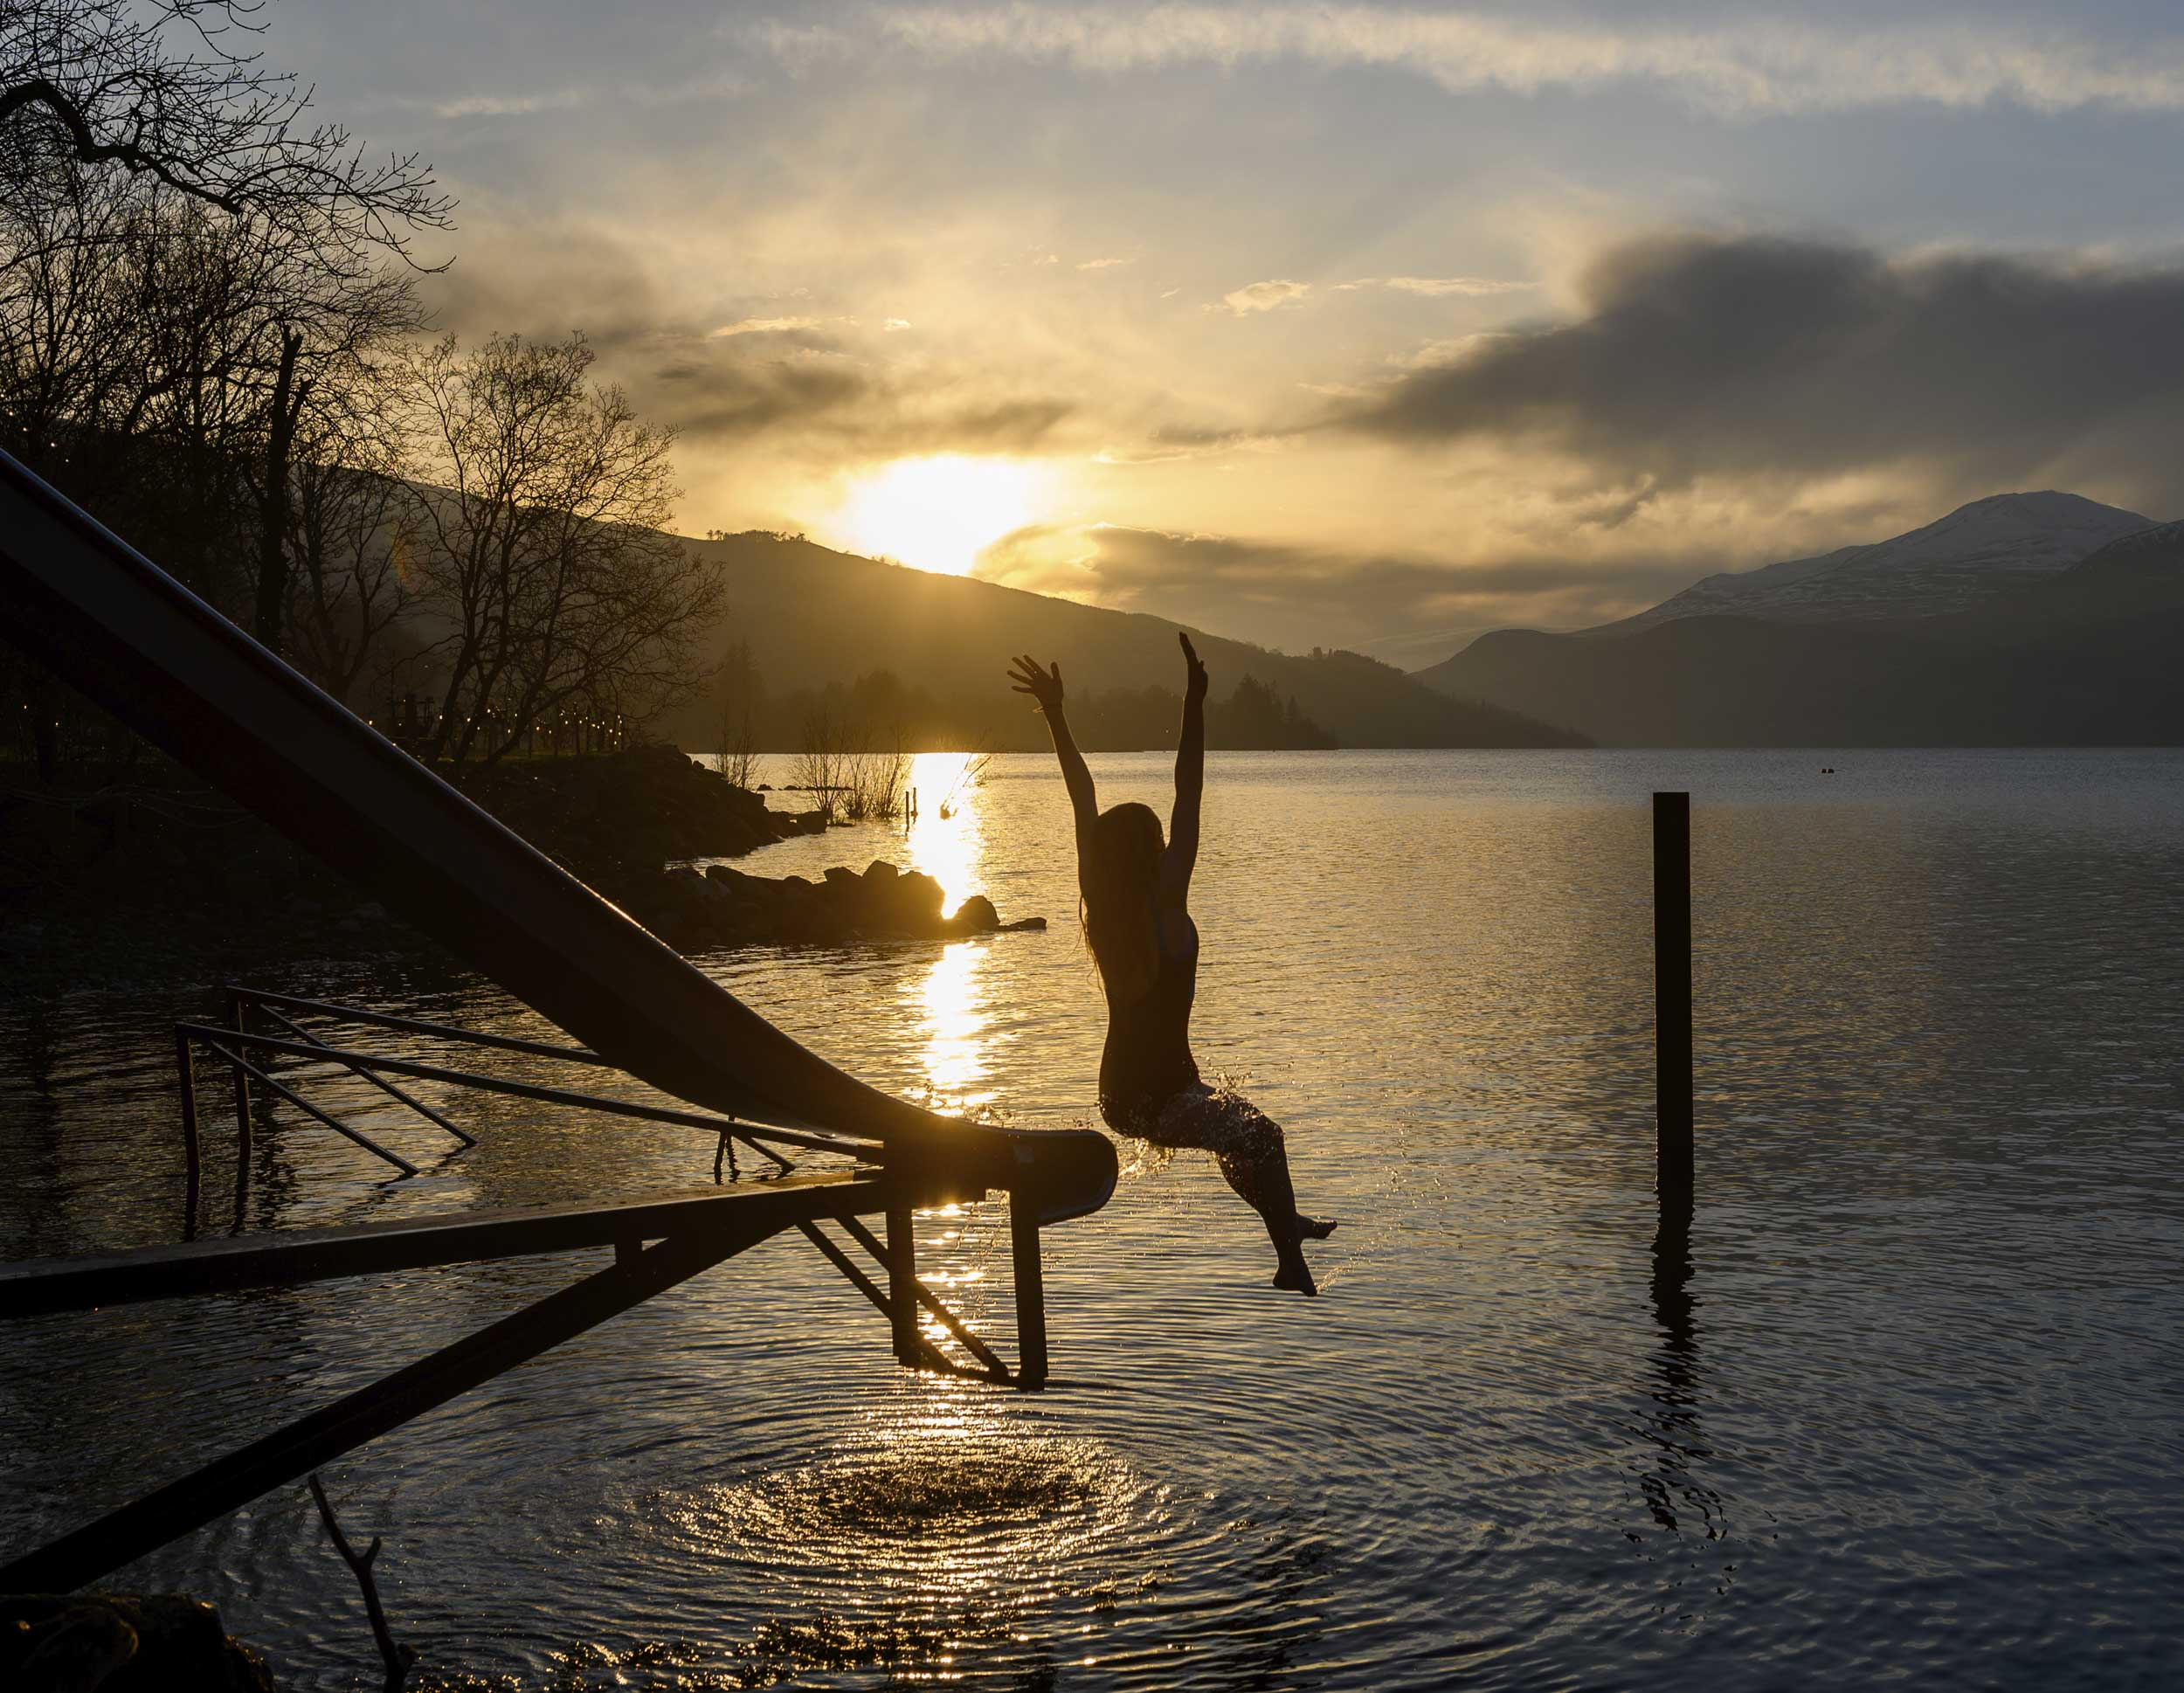 Silhouette Of Young Woman Jumping Off A Slide Into The Loch With A Golden Sunset And Mountain In Background